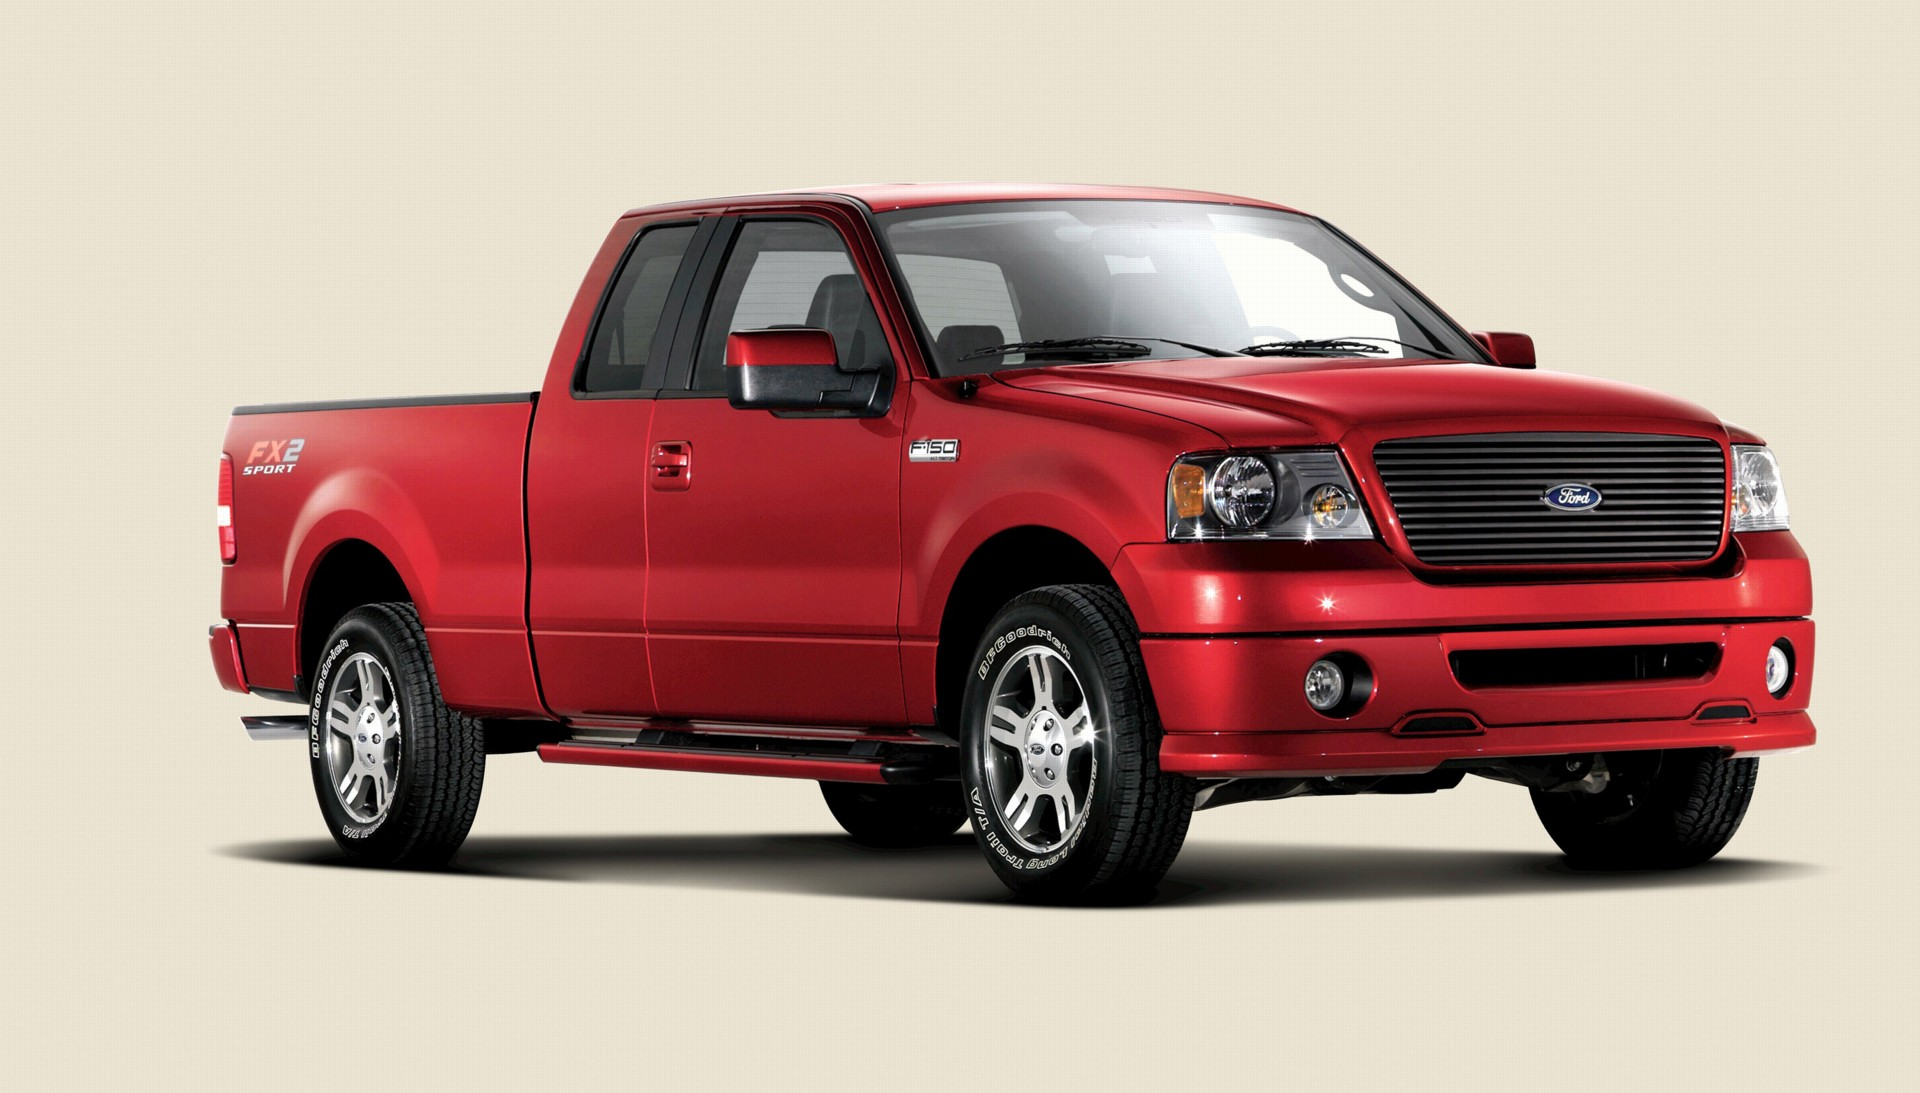 2007 ford f 150. Black Bedroom Furniture Sets. Home Design Ideas